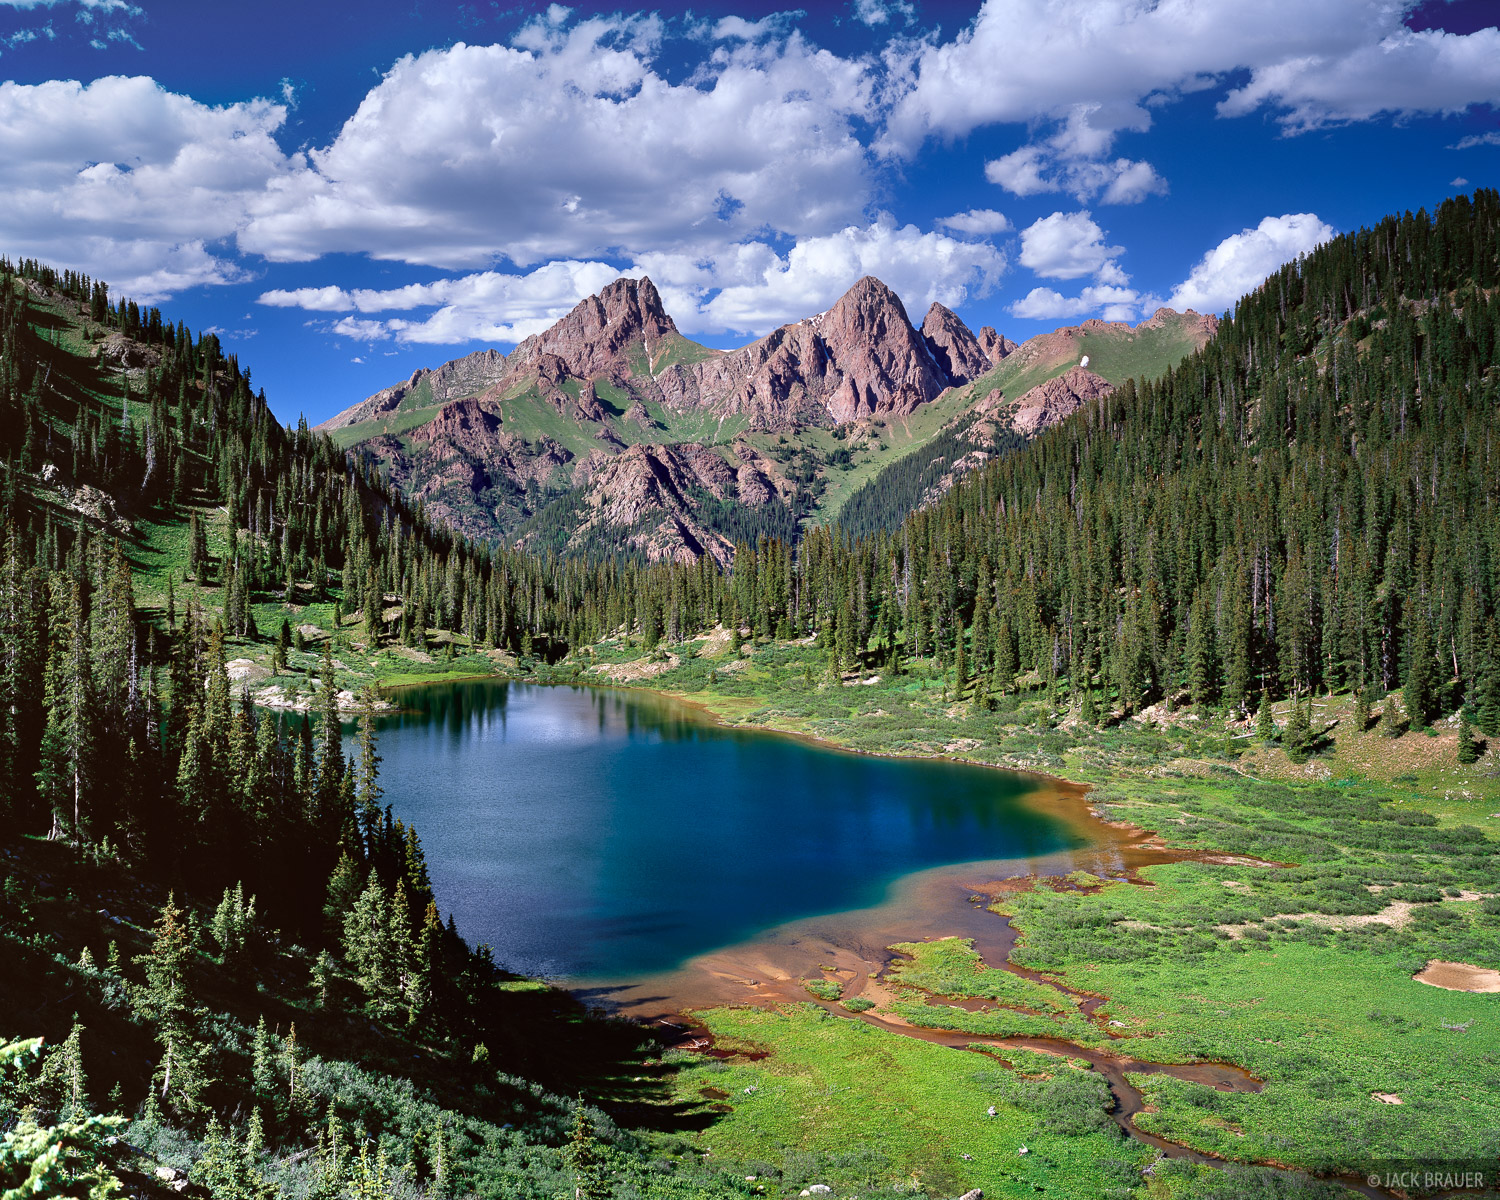 Pigeon and Turret Peaks, of the Needle Mountains, tower above this remote alpine lake in the San Juan Mountains - July